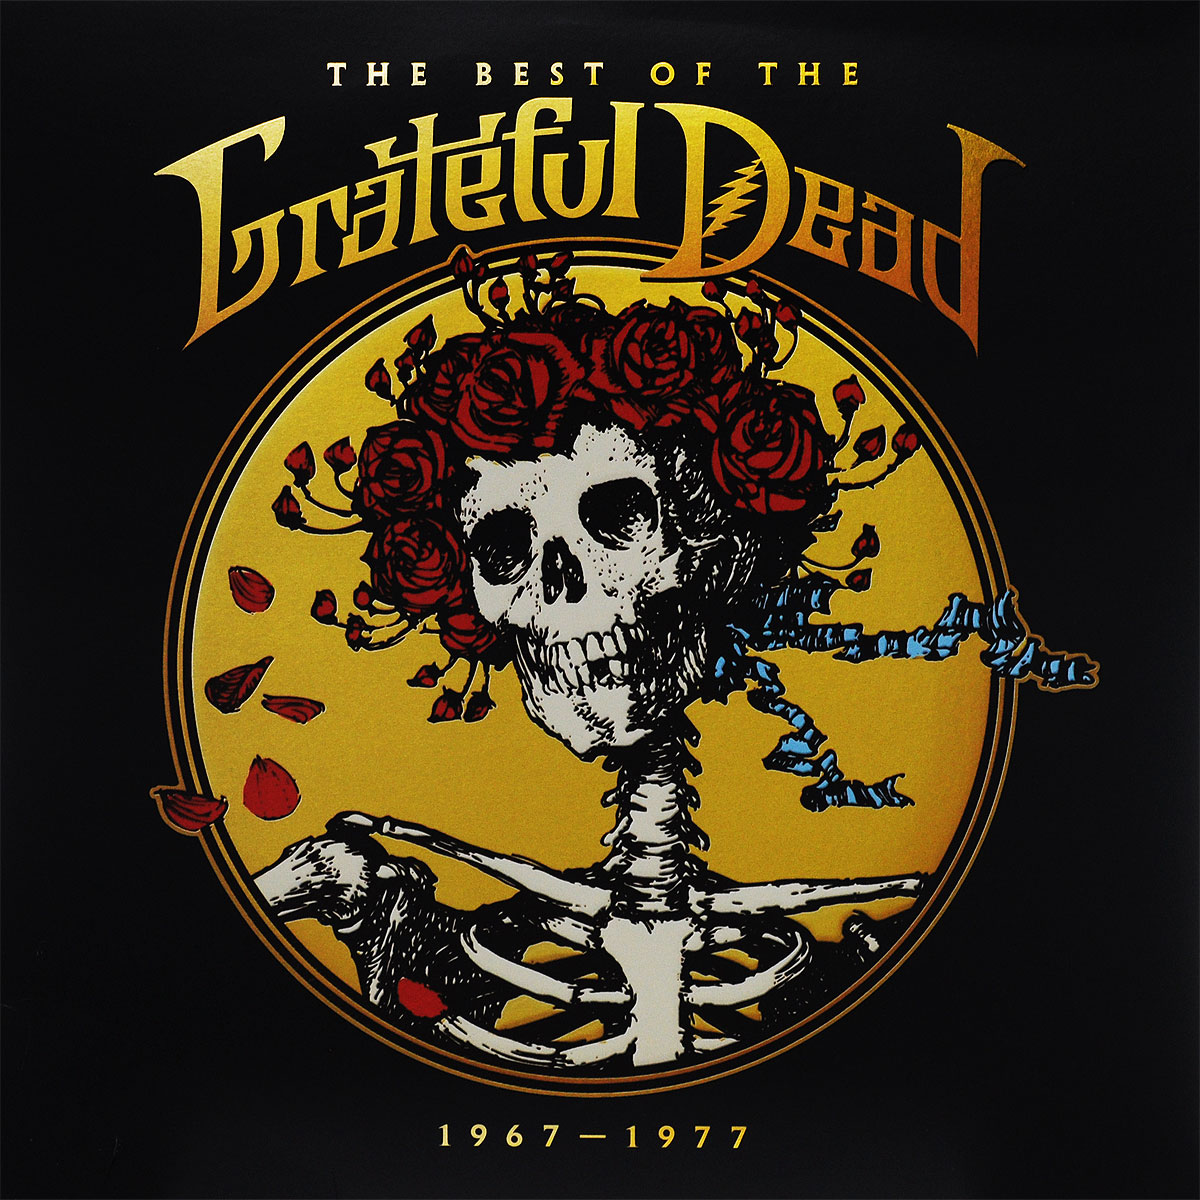 The Grateful Dead Grateful Dead. The Best Of The Grateful Dead (2 LP) dead famous